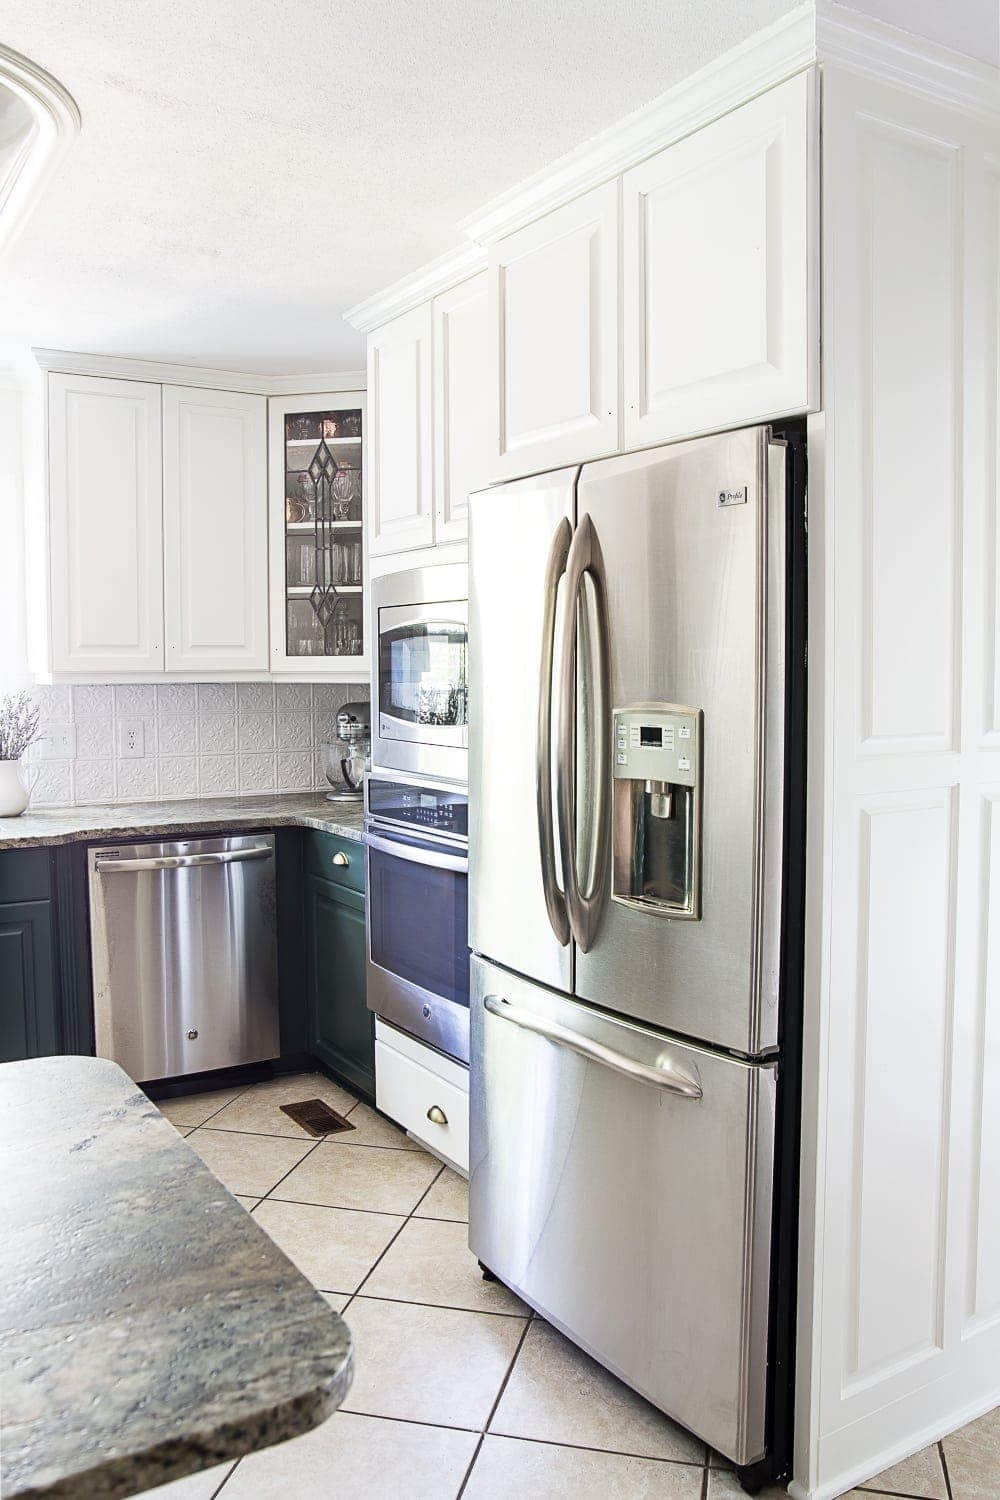 white upper and green lower kitchen cabinets stopping at wall oven & refrigerator